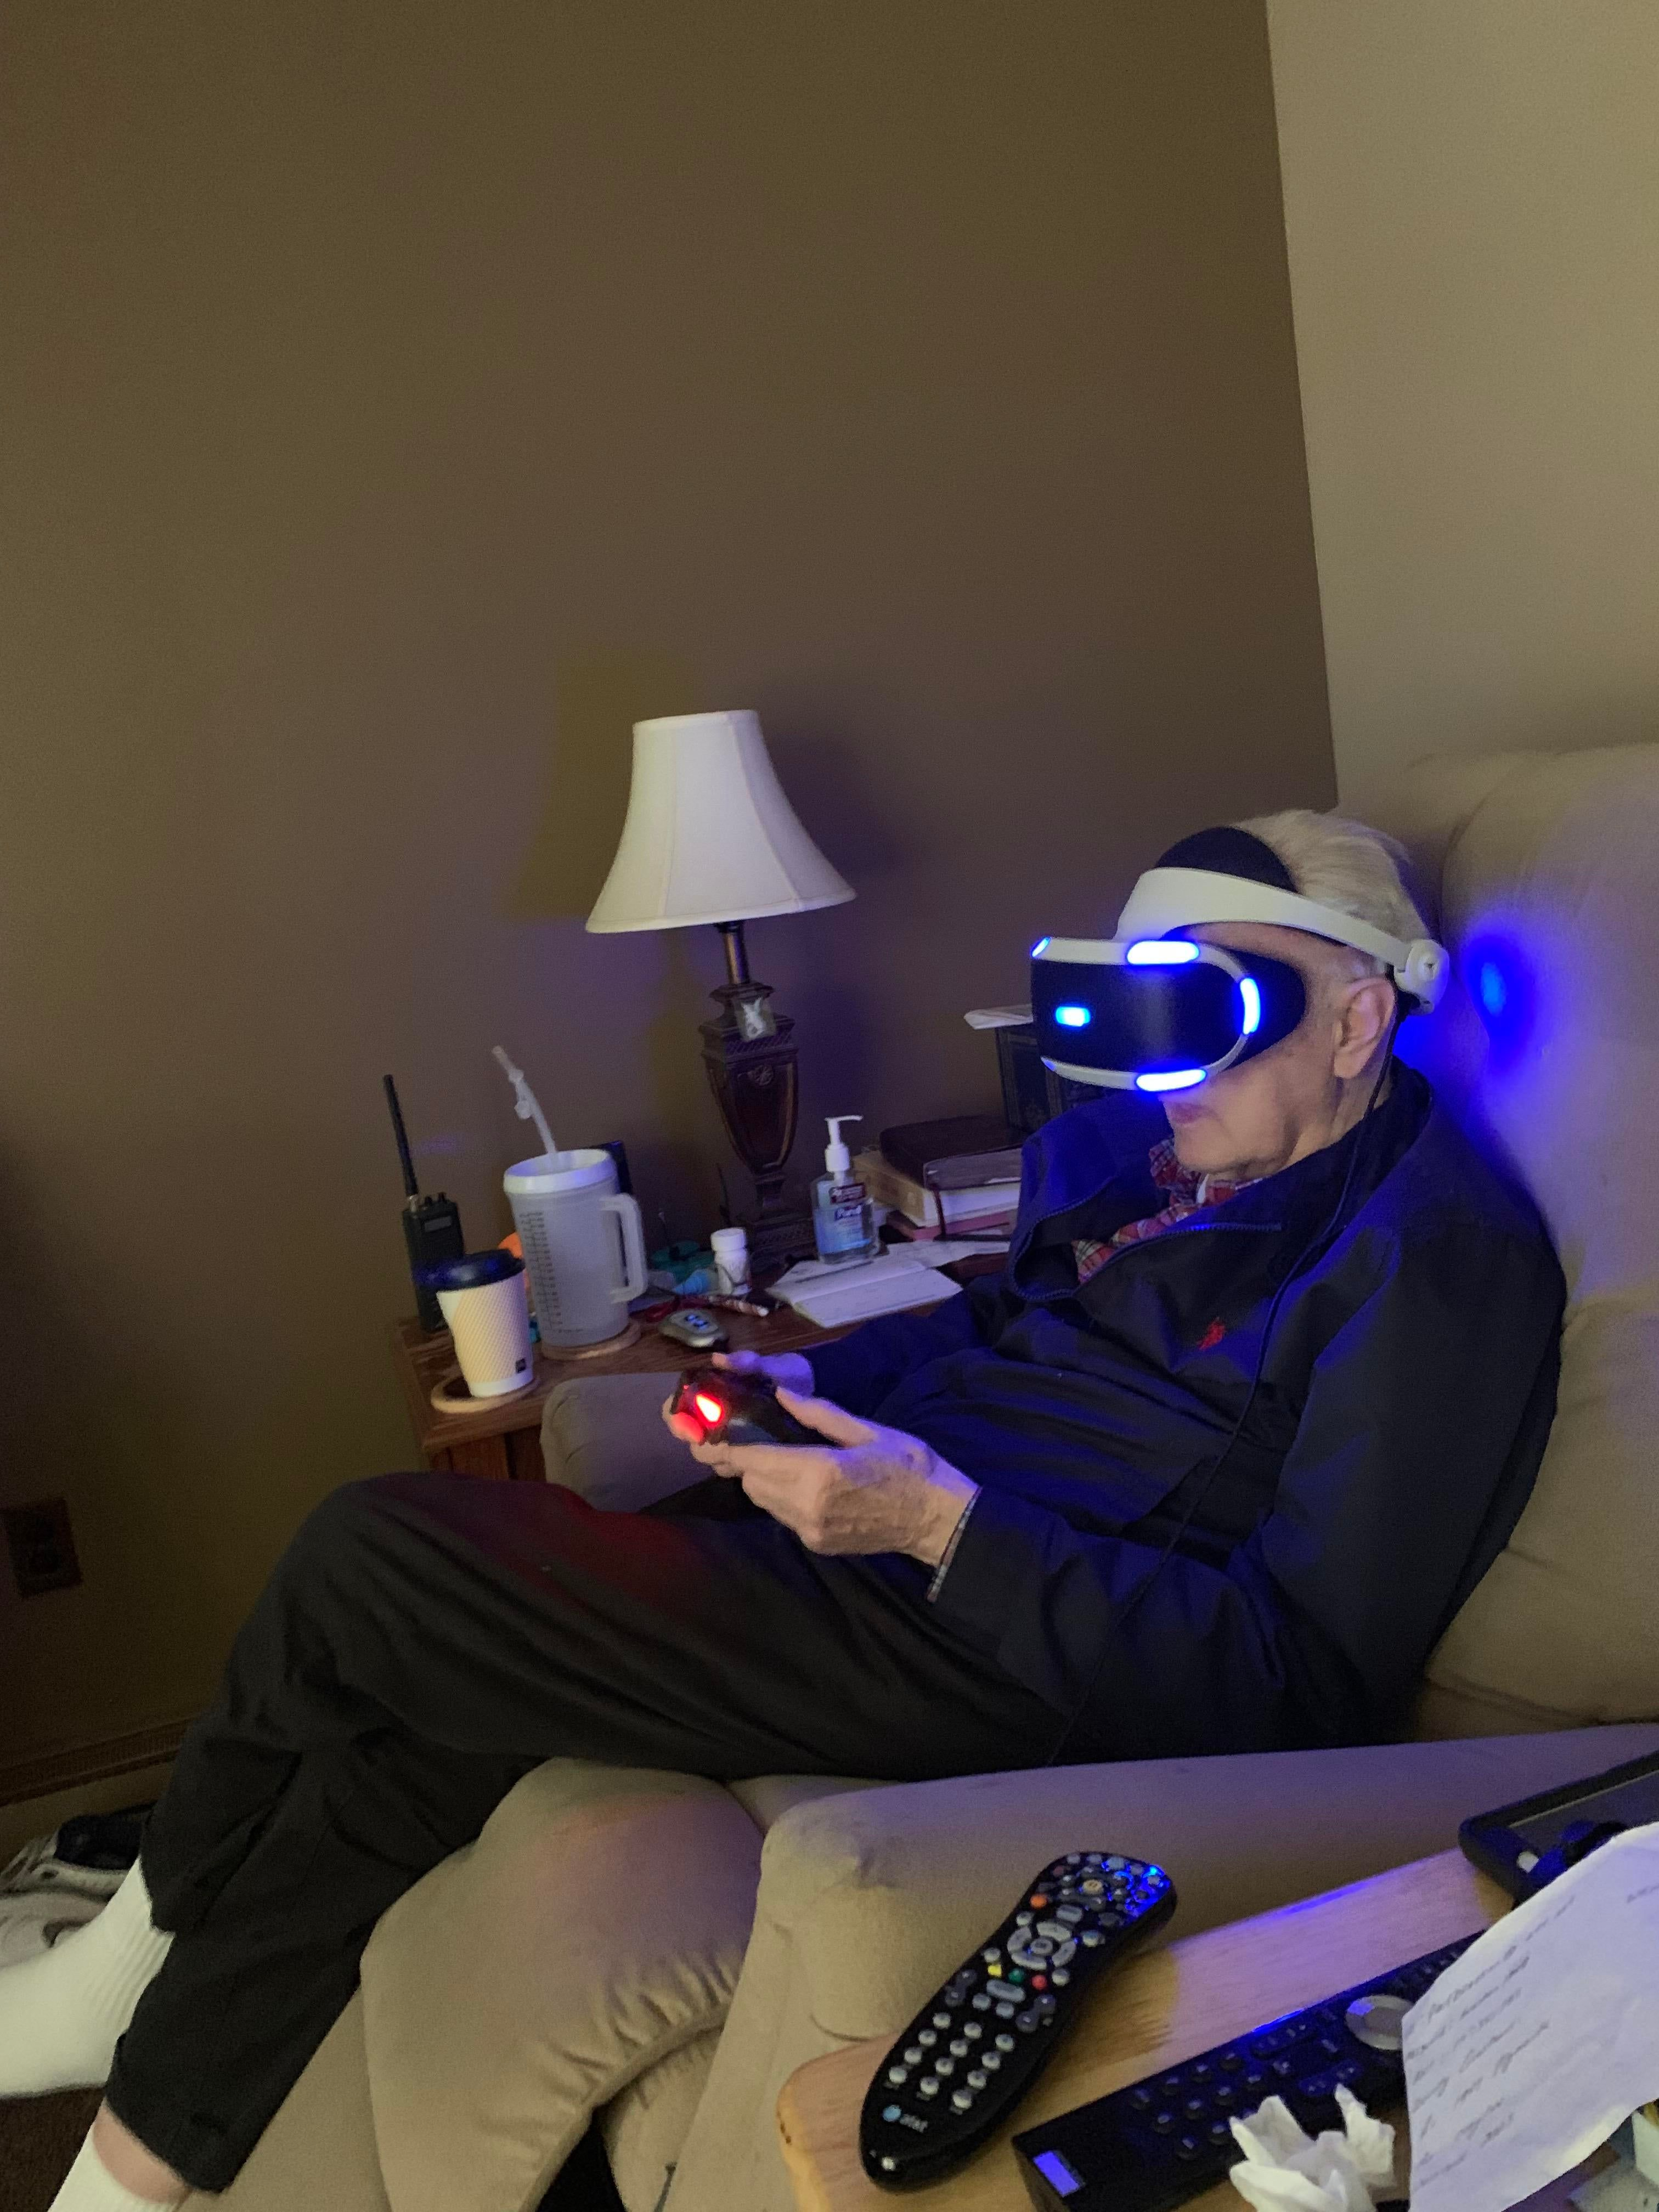 Got to introduce my 81 year old Grandfather to VR! Up